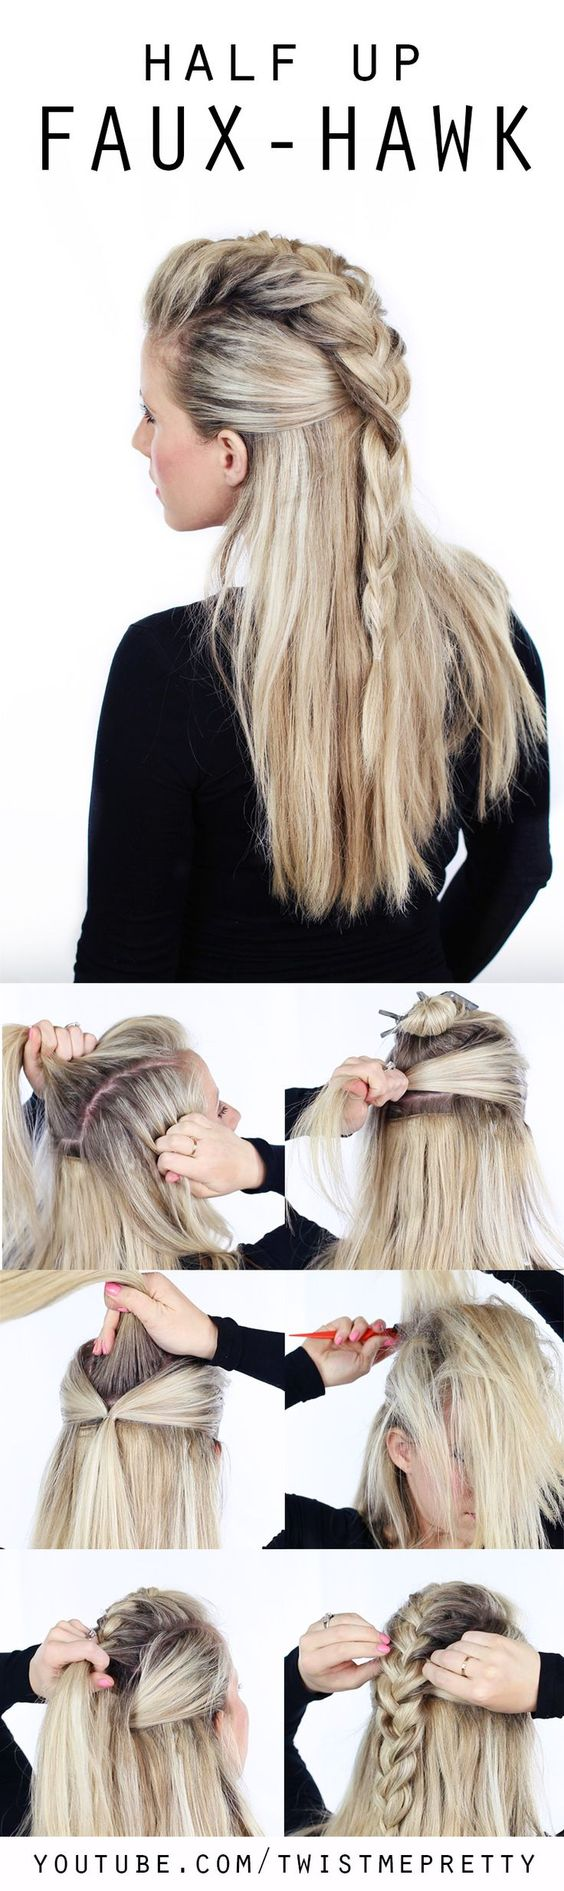 half up with braid: